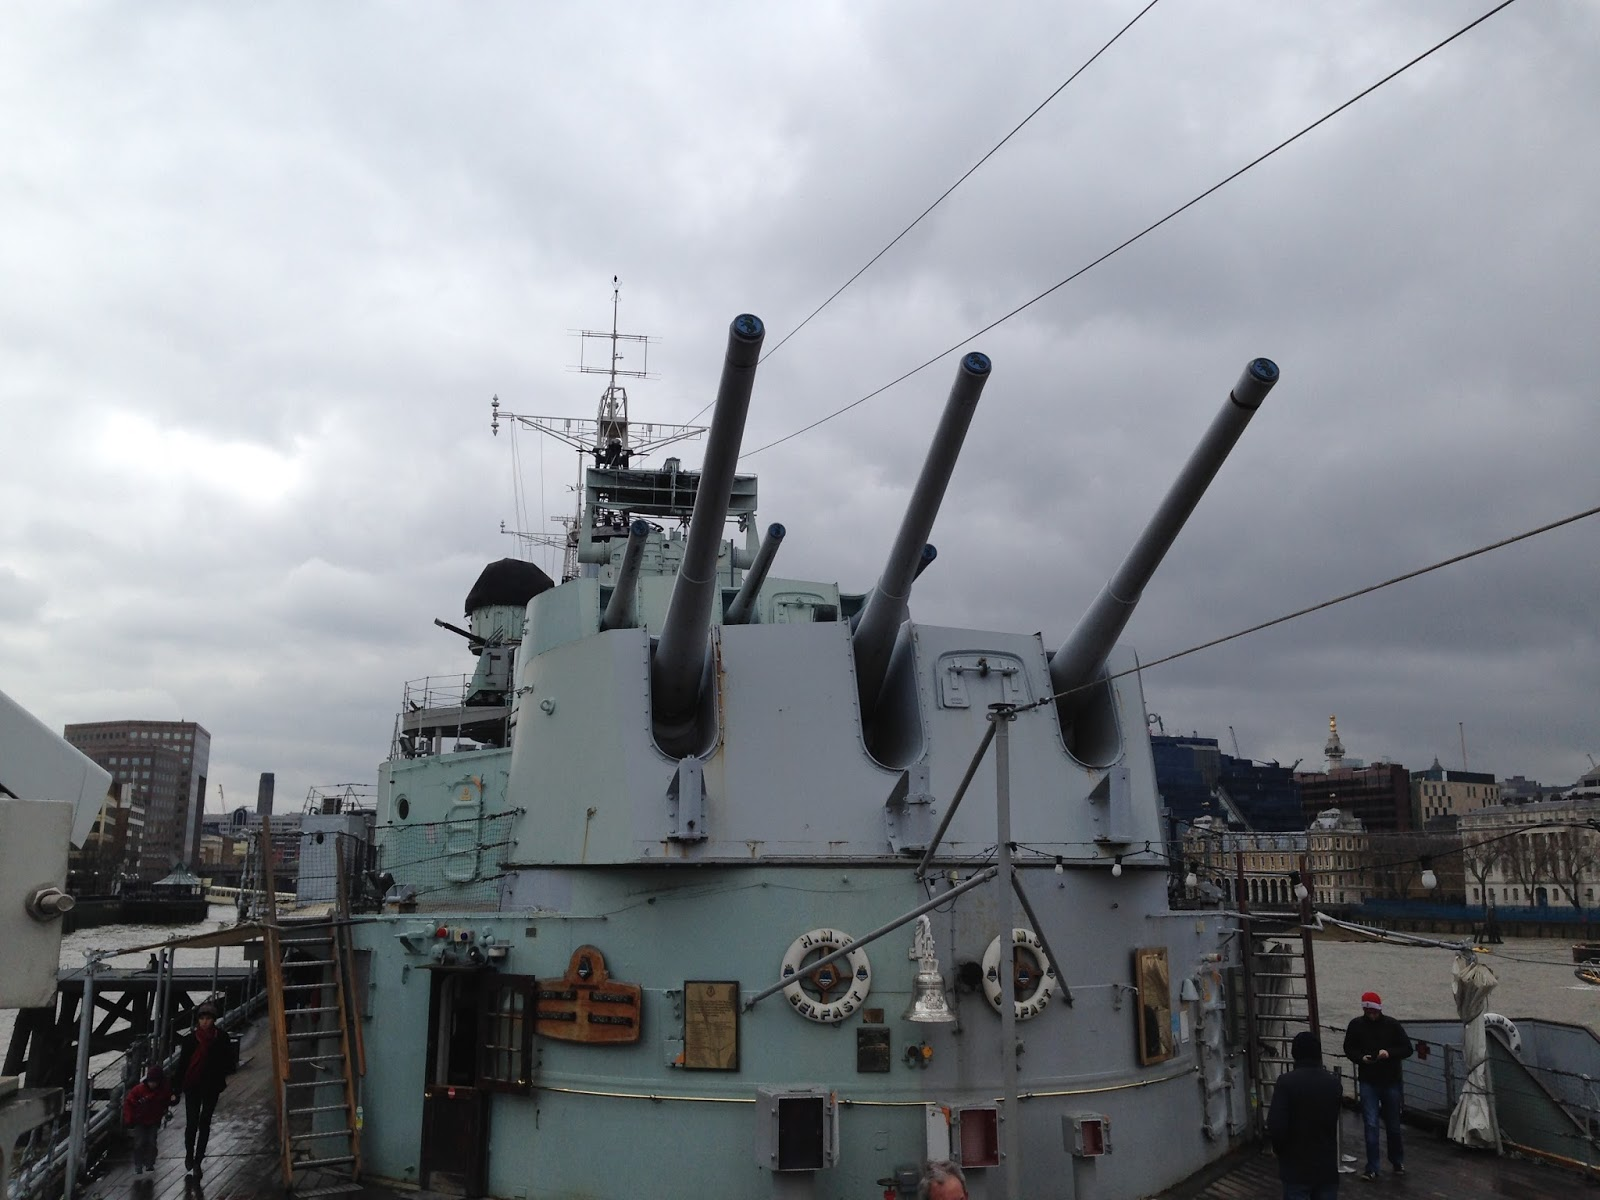 hms belfast, hms, boat, ship, ww2, service, navy, museum, london